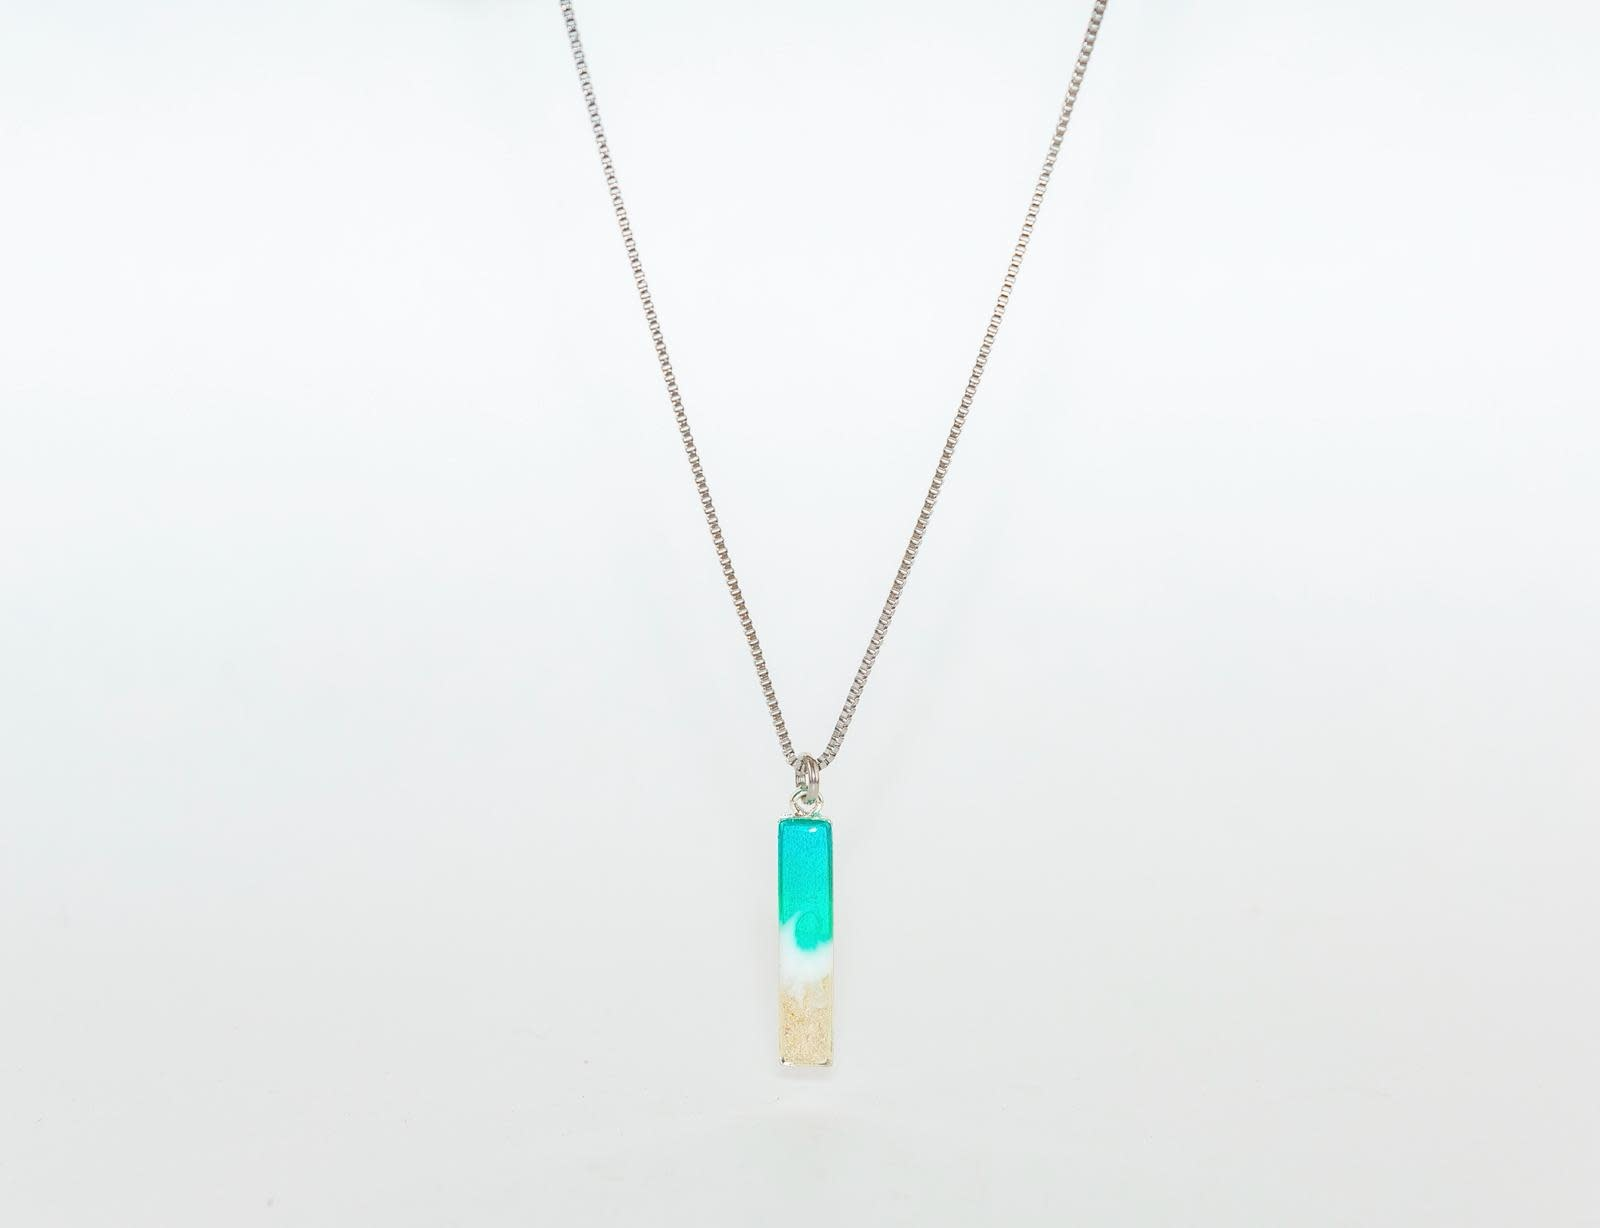 Wellington Michael Collection Shoreline Bar Necklace